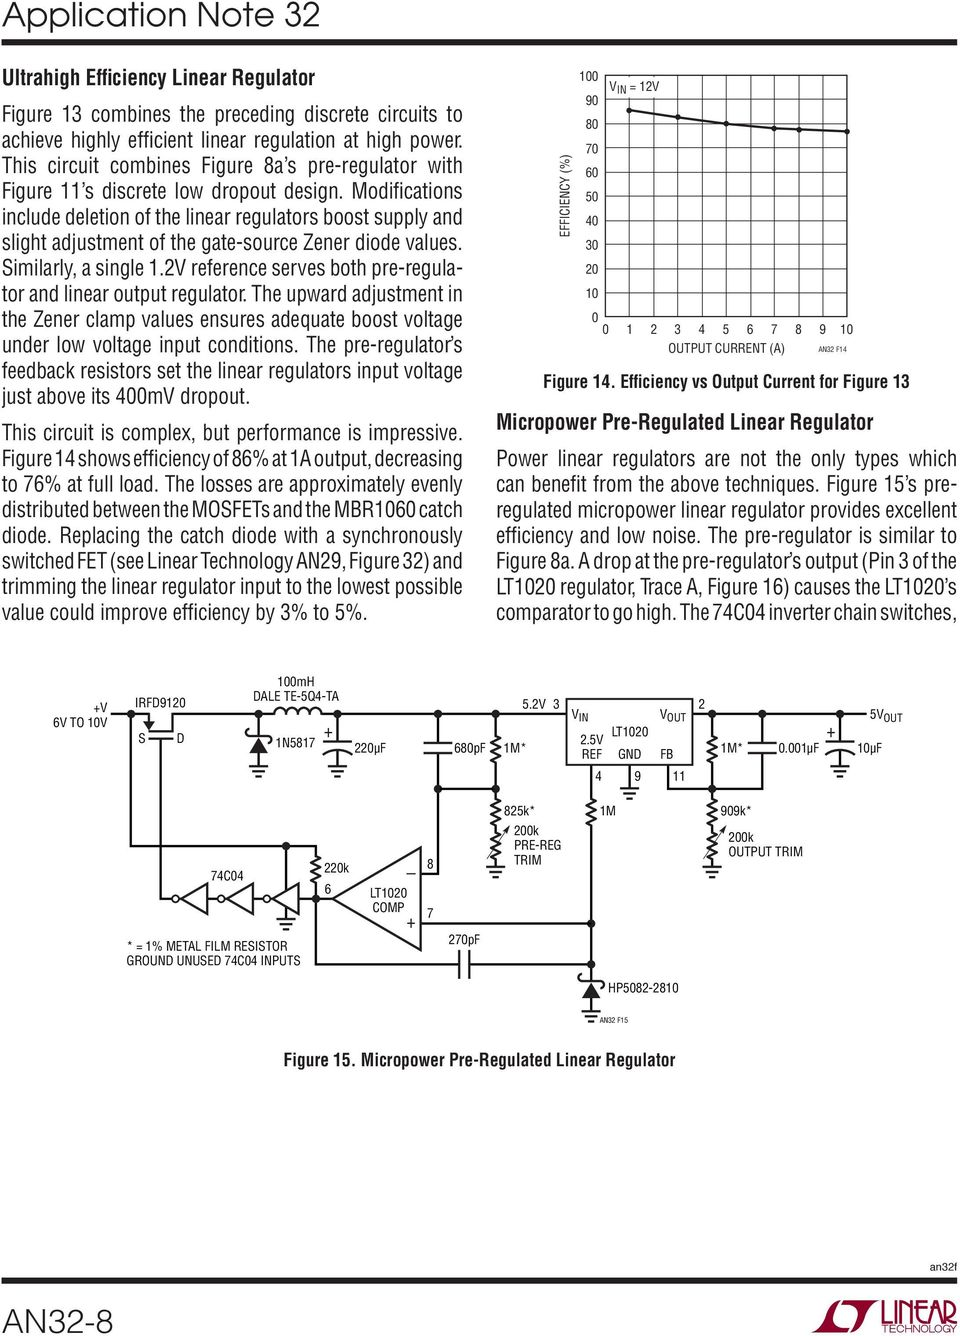 Application Note 32 March High Effi Ciency Linear Regulators An32 1 Circuit Schematic Electronics Voltage Regulator With Lt1086 Modifications Include Deletion Of The Boost Supply And Slight Adjustment Gate